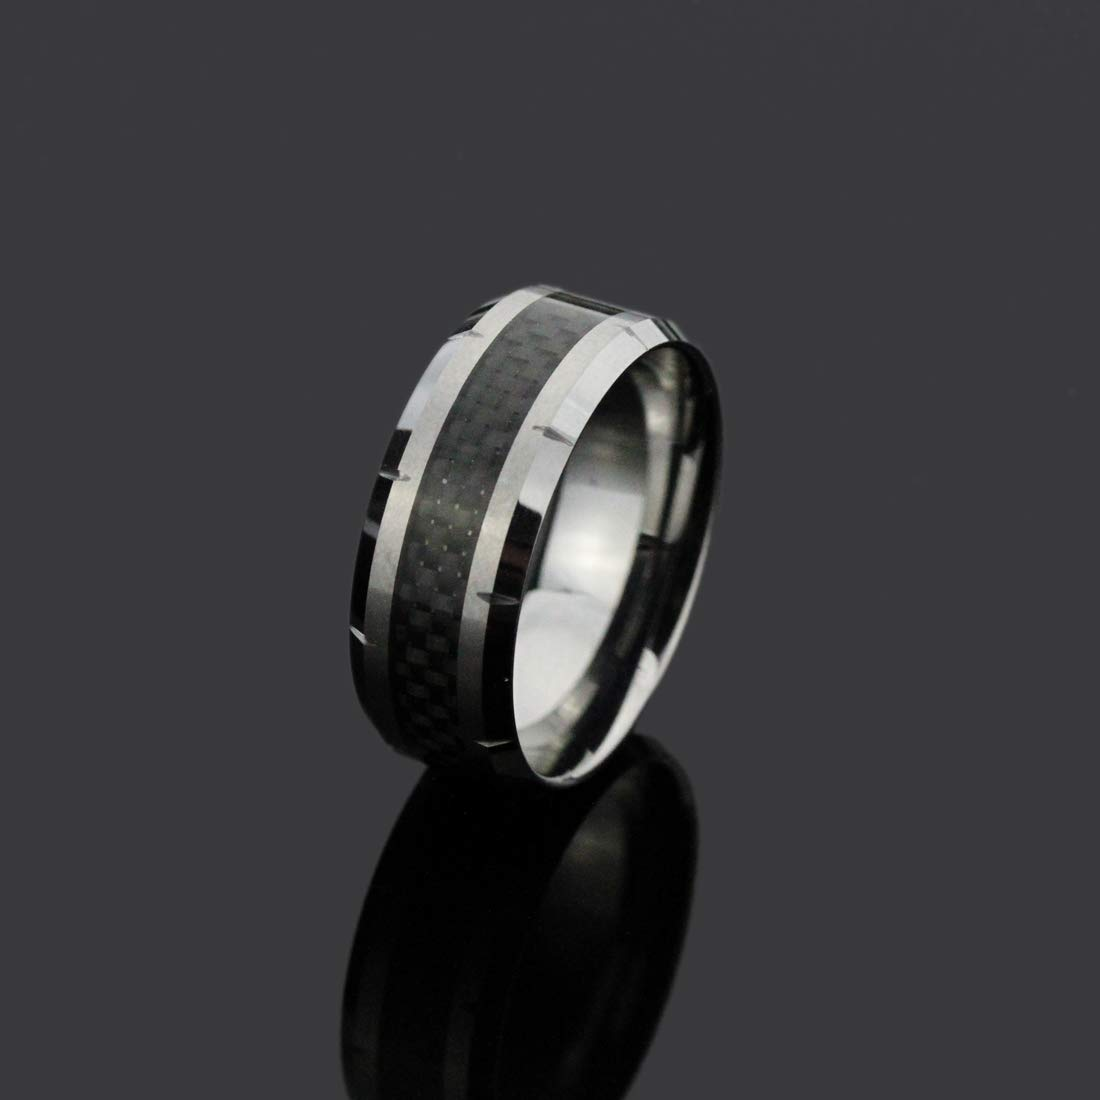 5 to 15 Double Accent 10MM Comfort Fit Tungsten Carbide Wedding Band Black Carbon Fiber Inlay Grooved Tungsten Ring